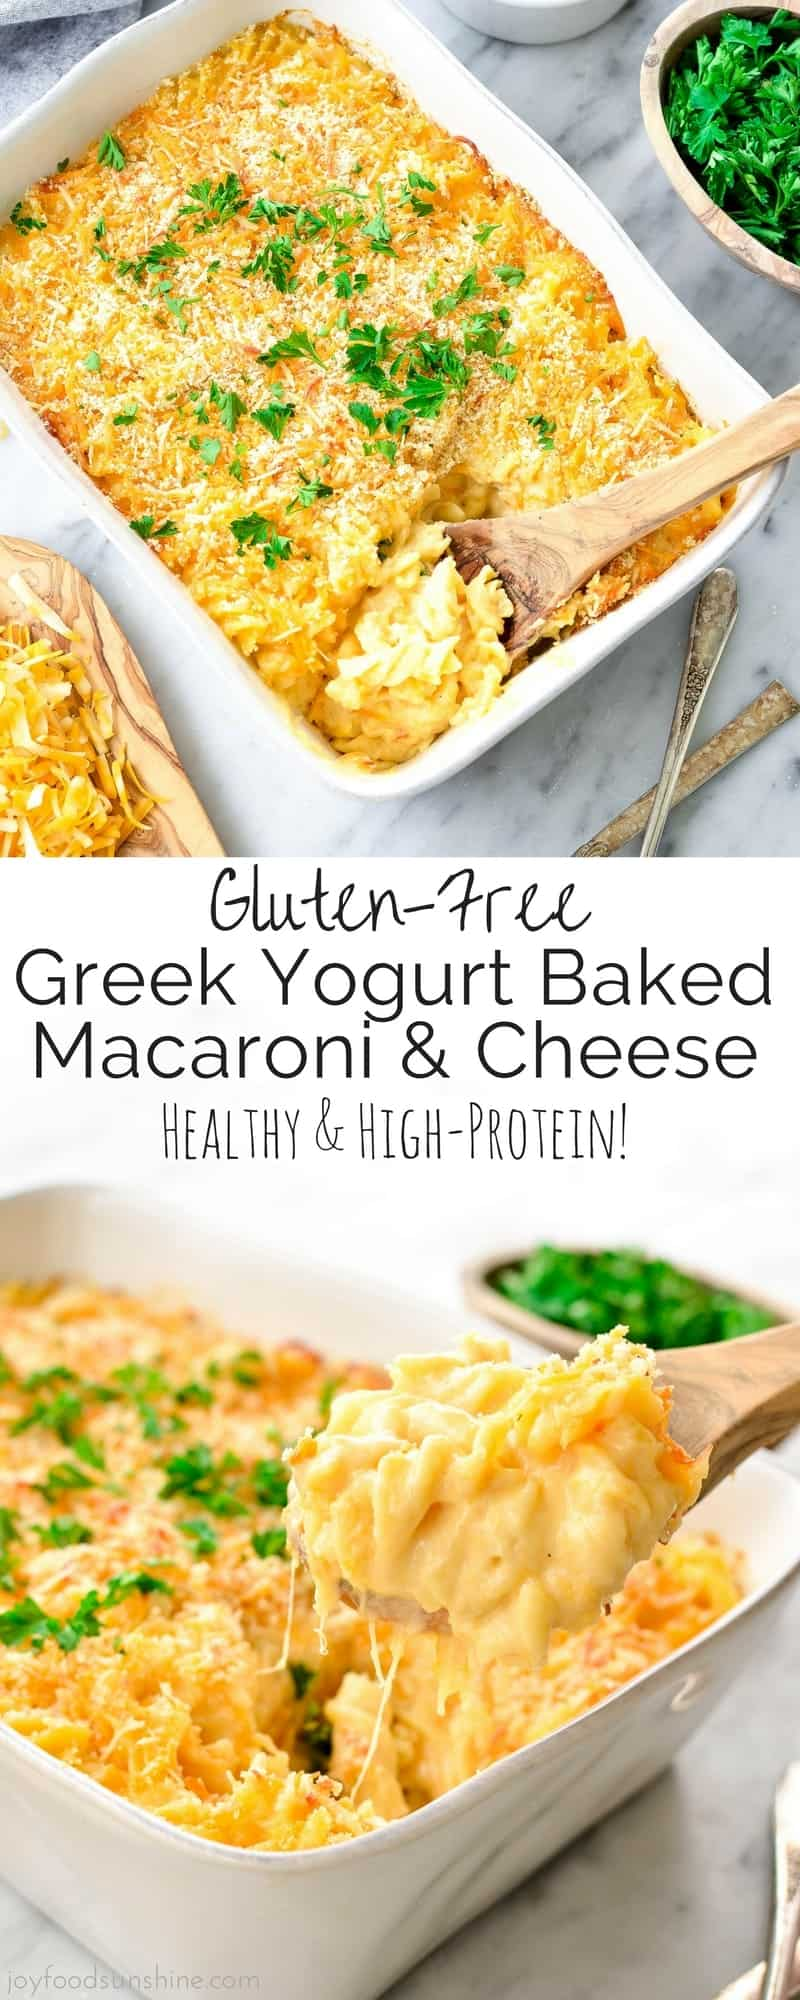 Gluten-Free Baked Greek Yogurt Macaroni & Cheese is an easy, healthier version of everyone's favorite comfort food! It's gluten-free and protein-packed and a great make-ahead dish to feed a crowd!